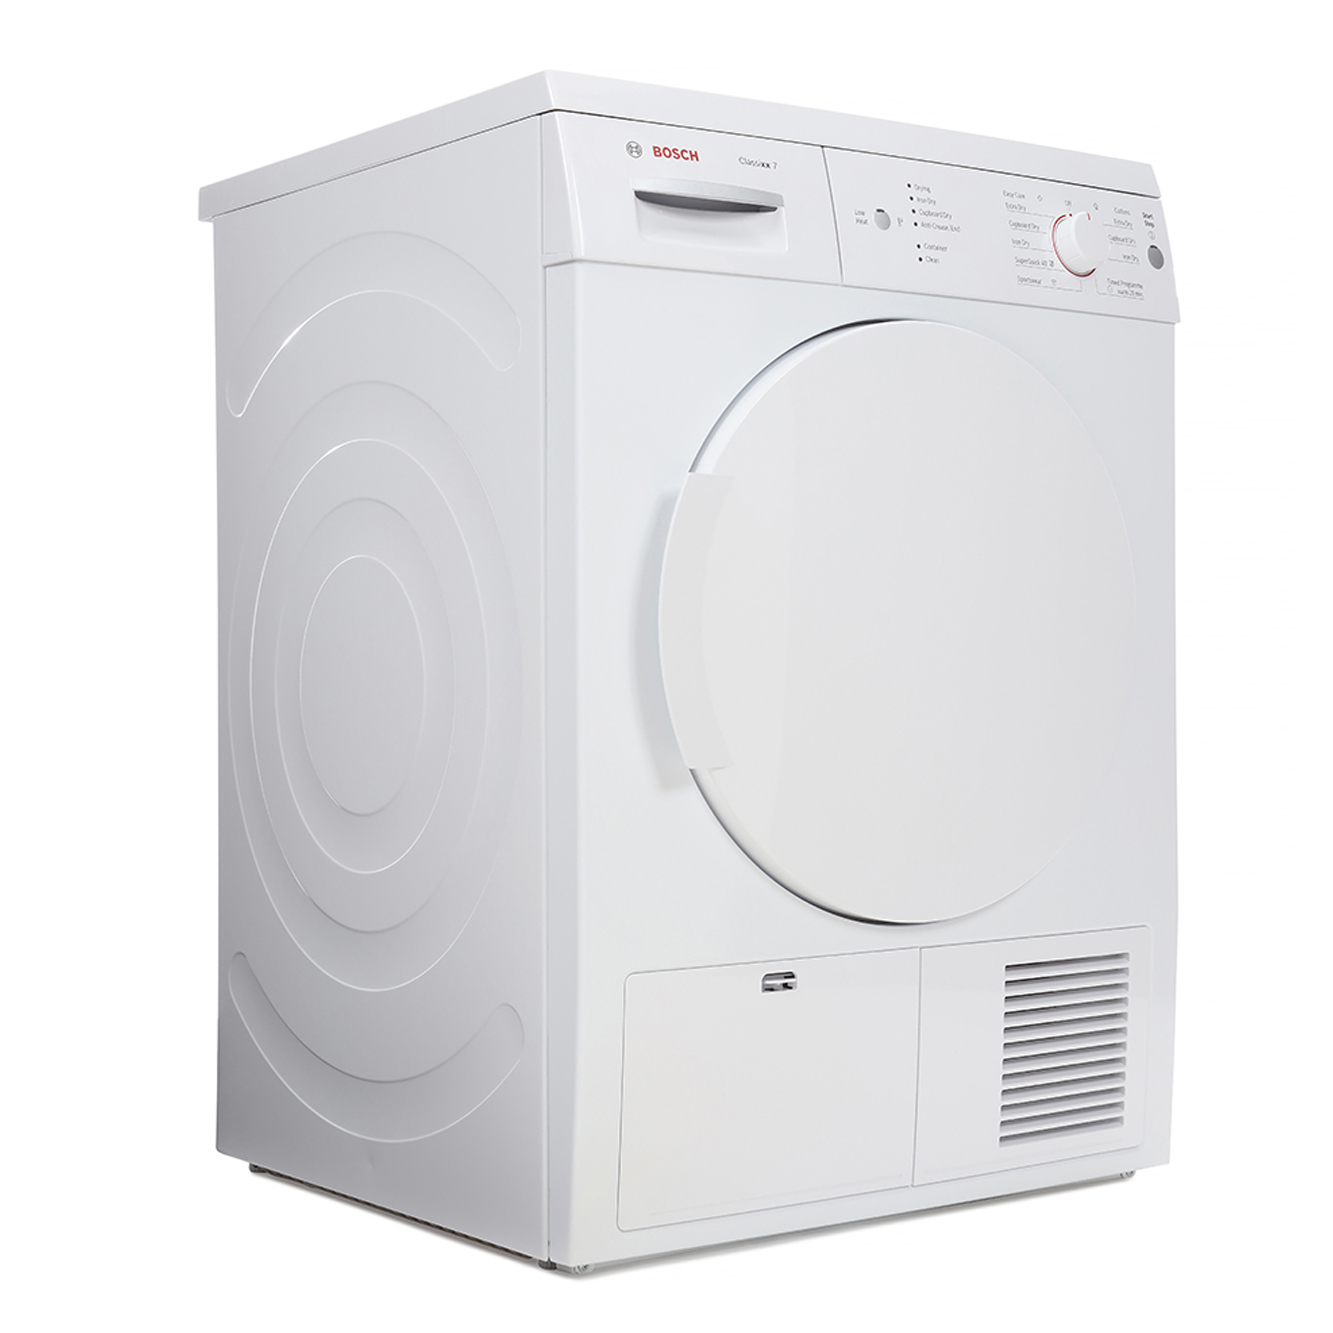 bosch exxcel 8 tumble dryer manual